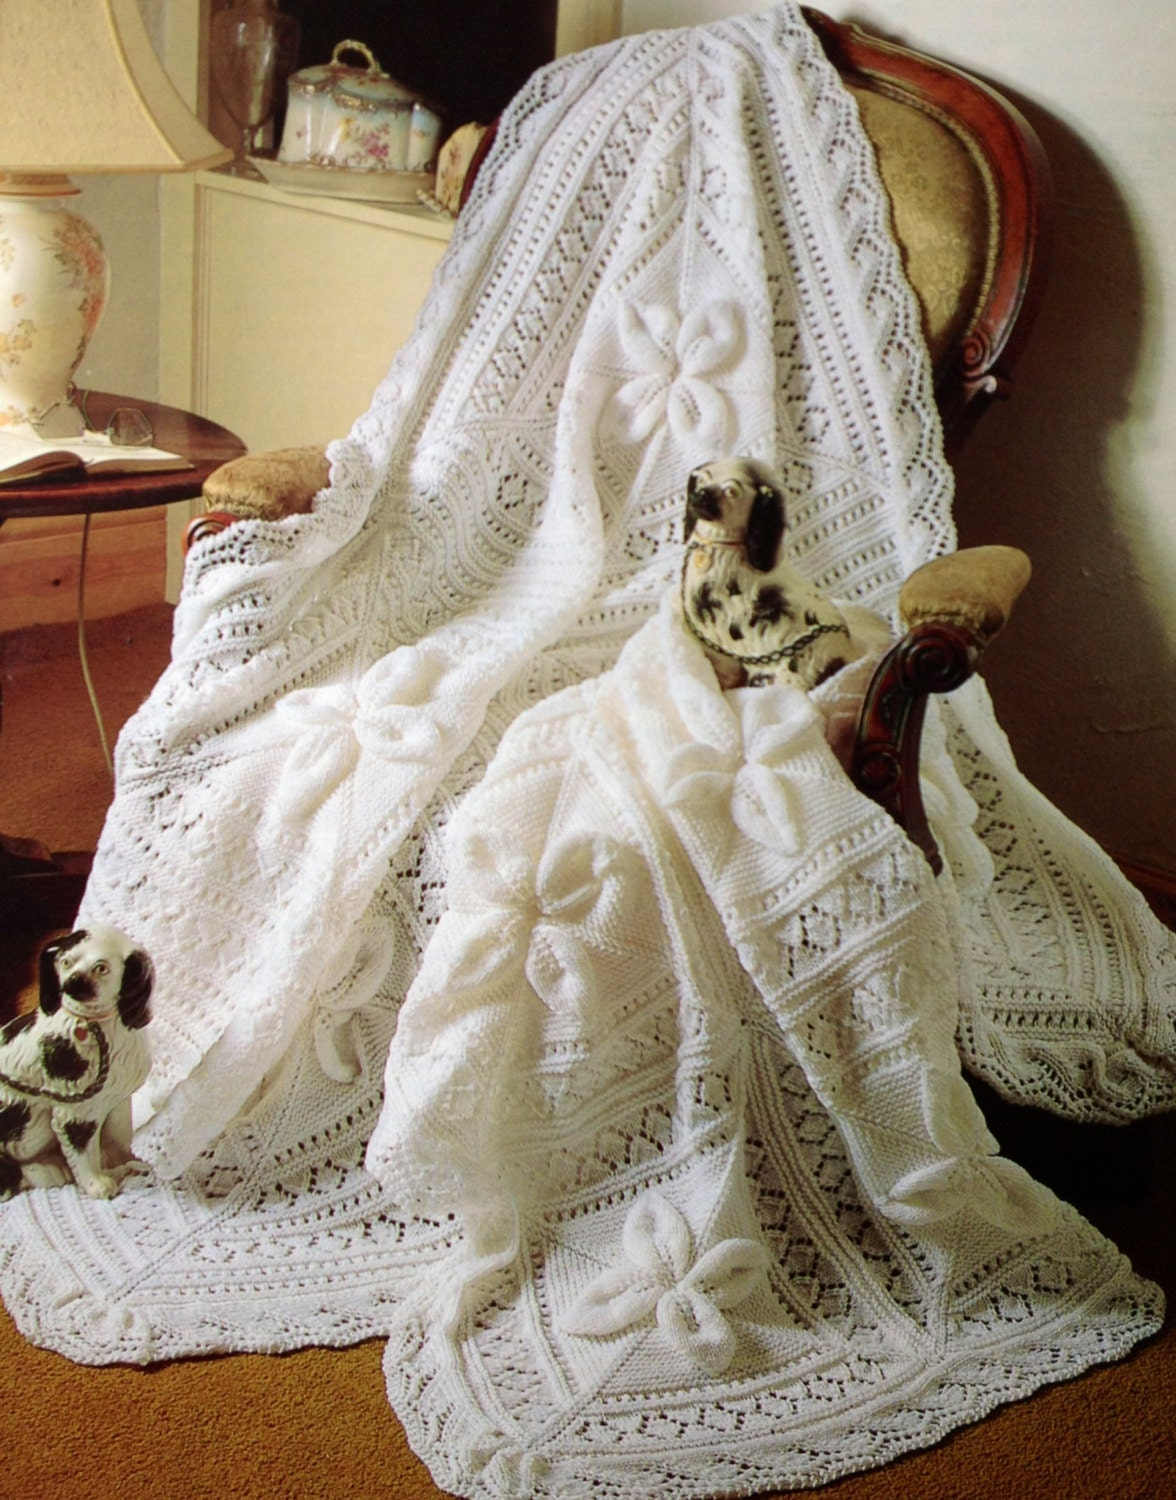 Knitting Pattern For Baby Shawl Blanket : baby blanket knitting pattern shawl and cot blanket by ...